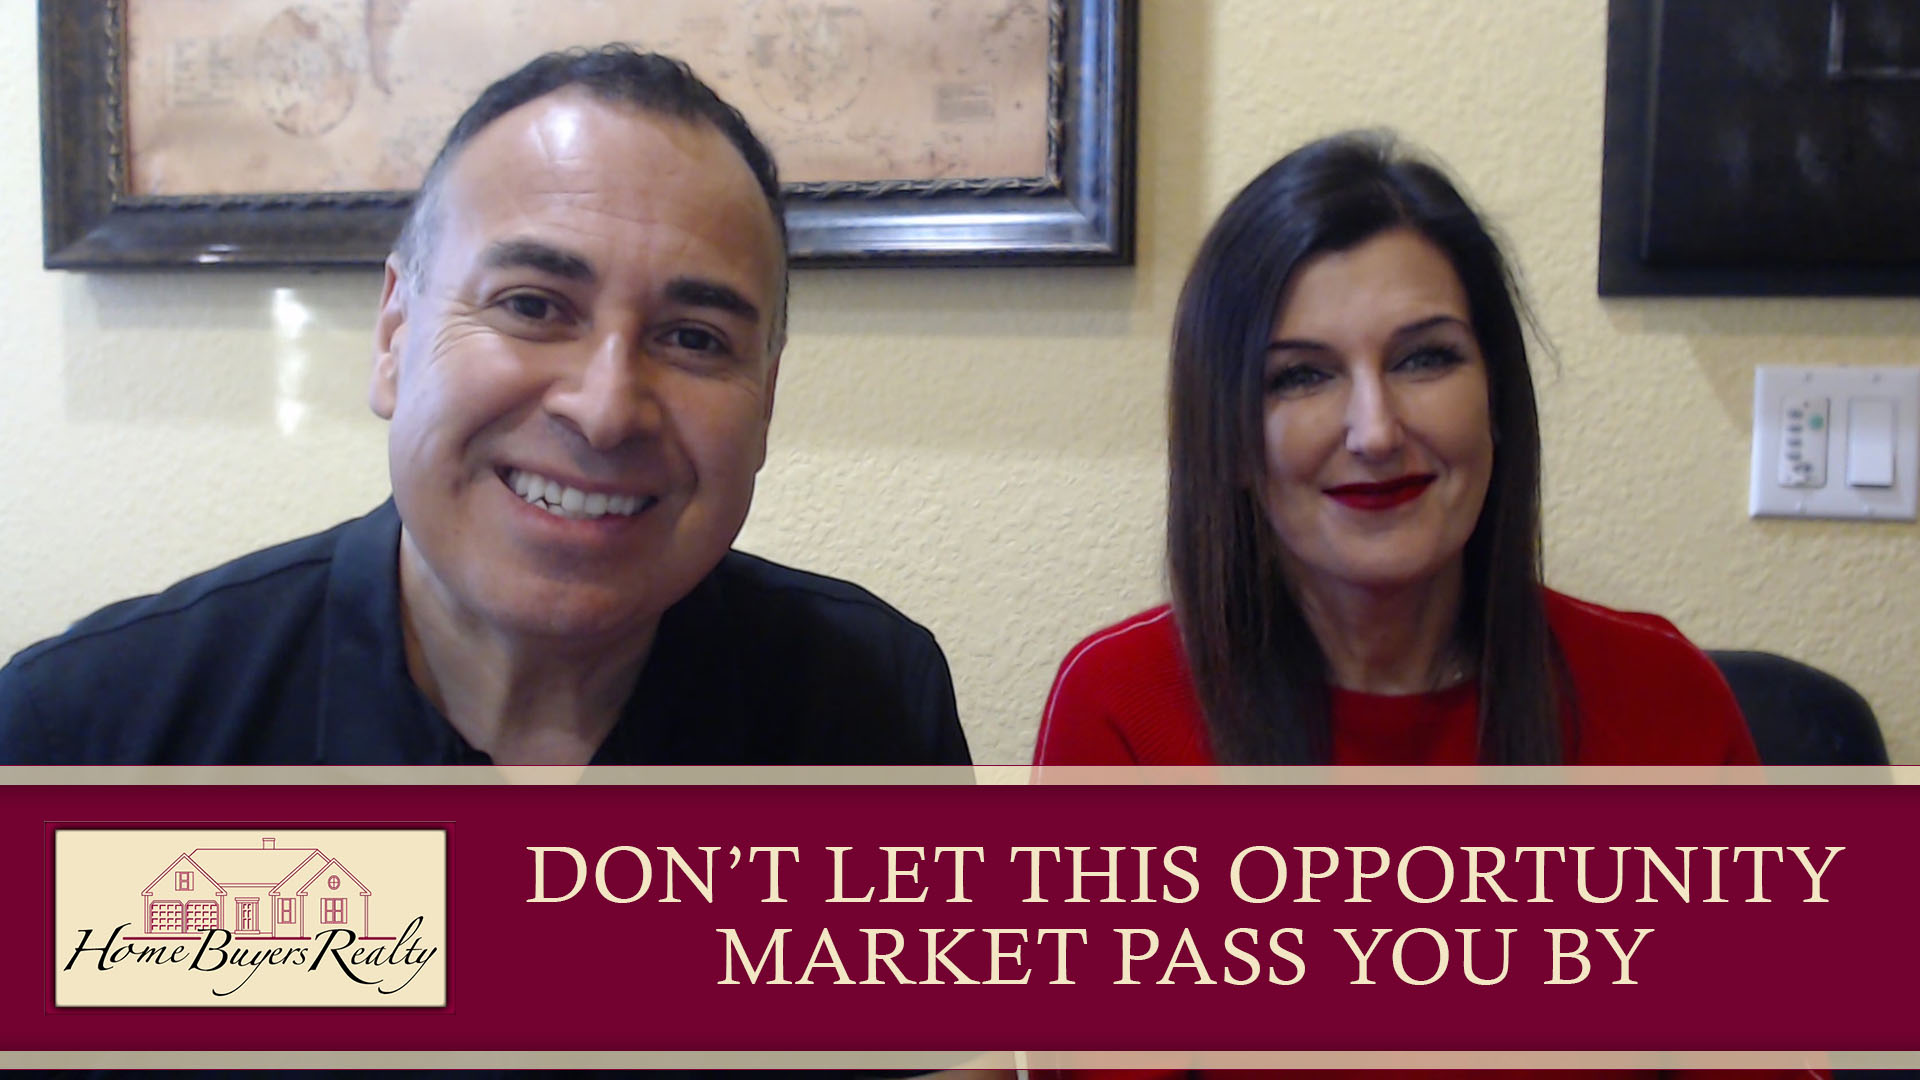 An Opportunity Market Buyers and Sellers Can Take Advantage Of